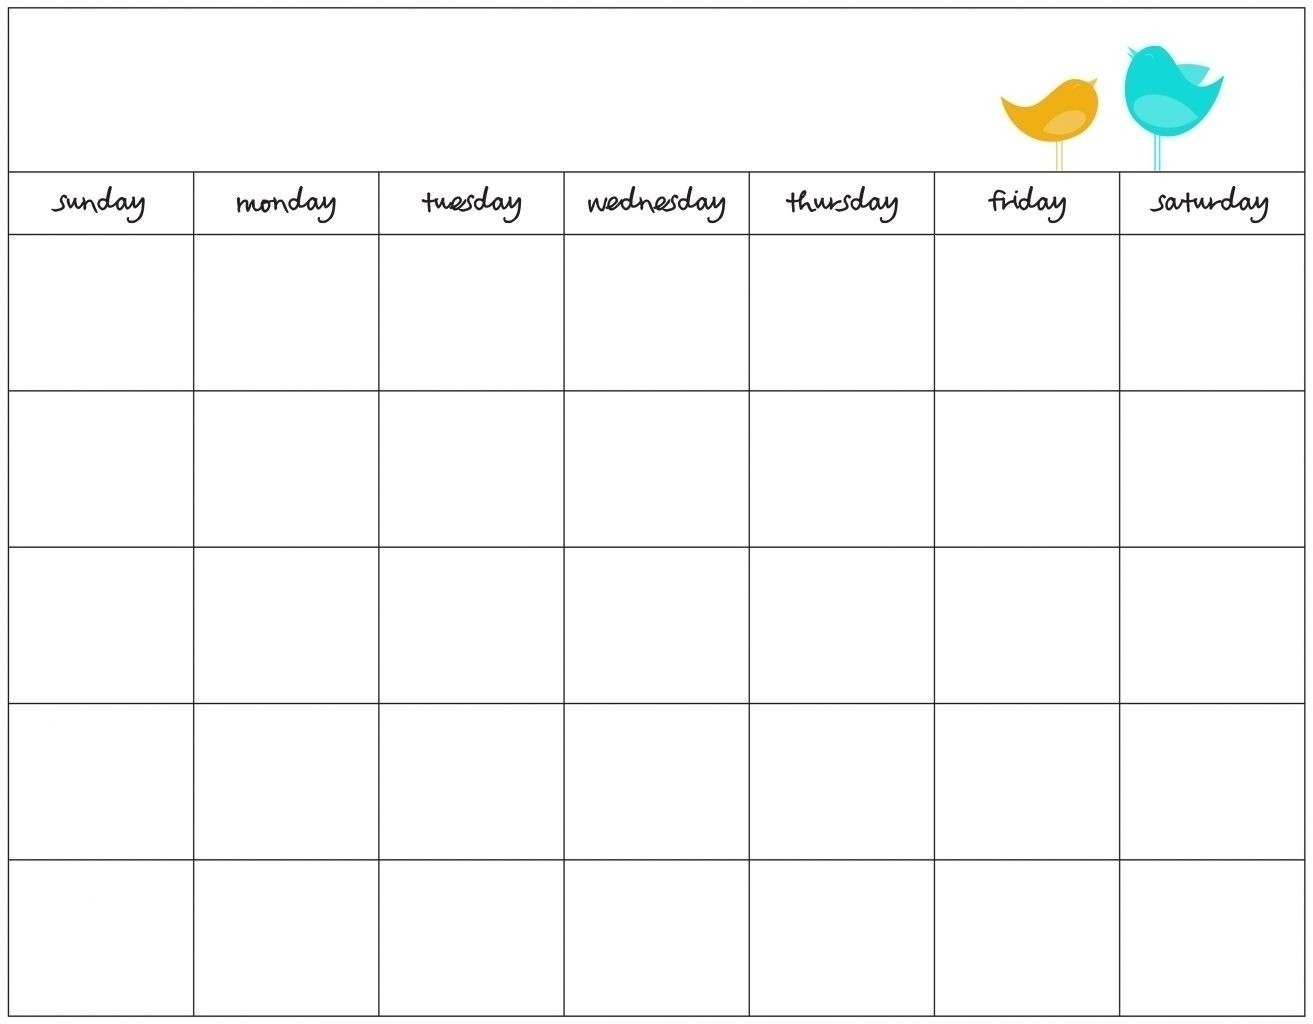 Schedule Template Day Week Calendar Printable | Smorad with regard to Calendar By Day With Printable